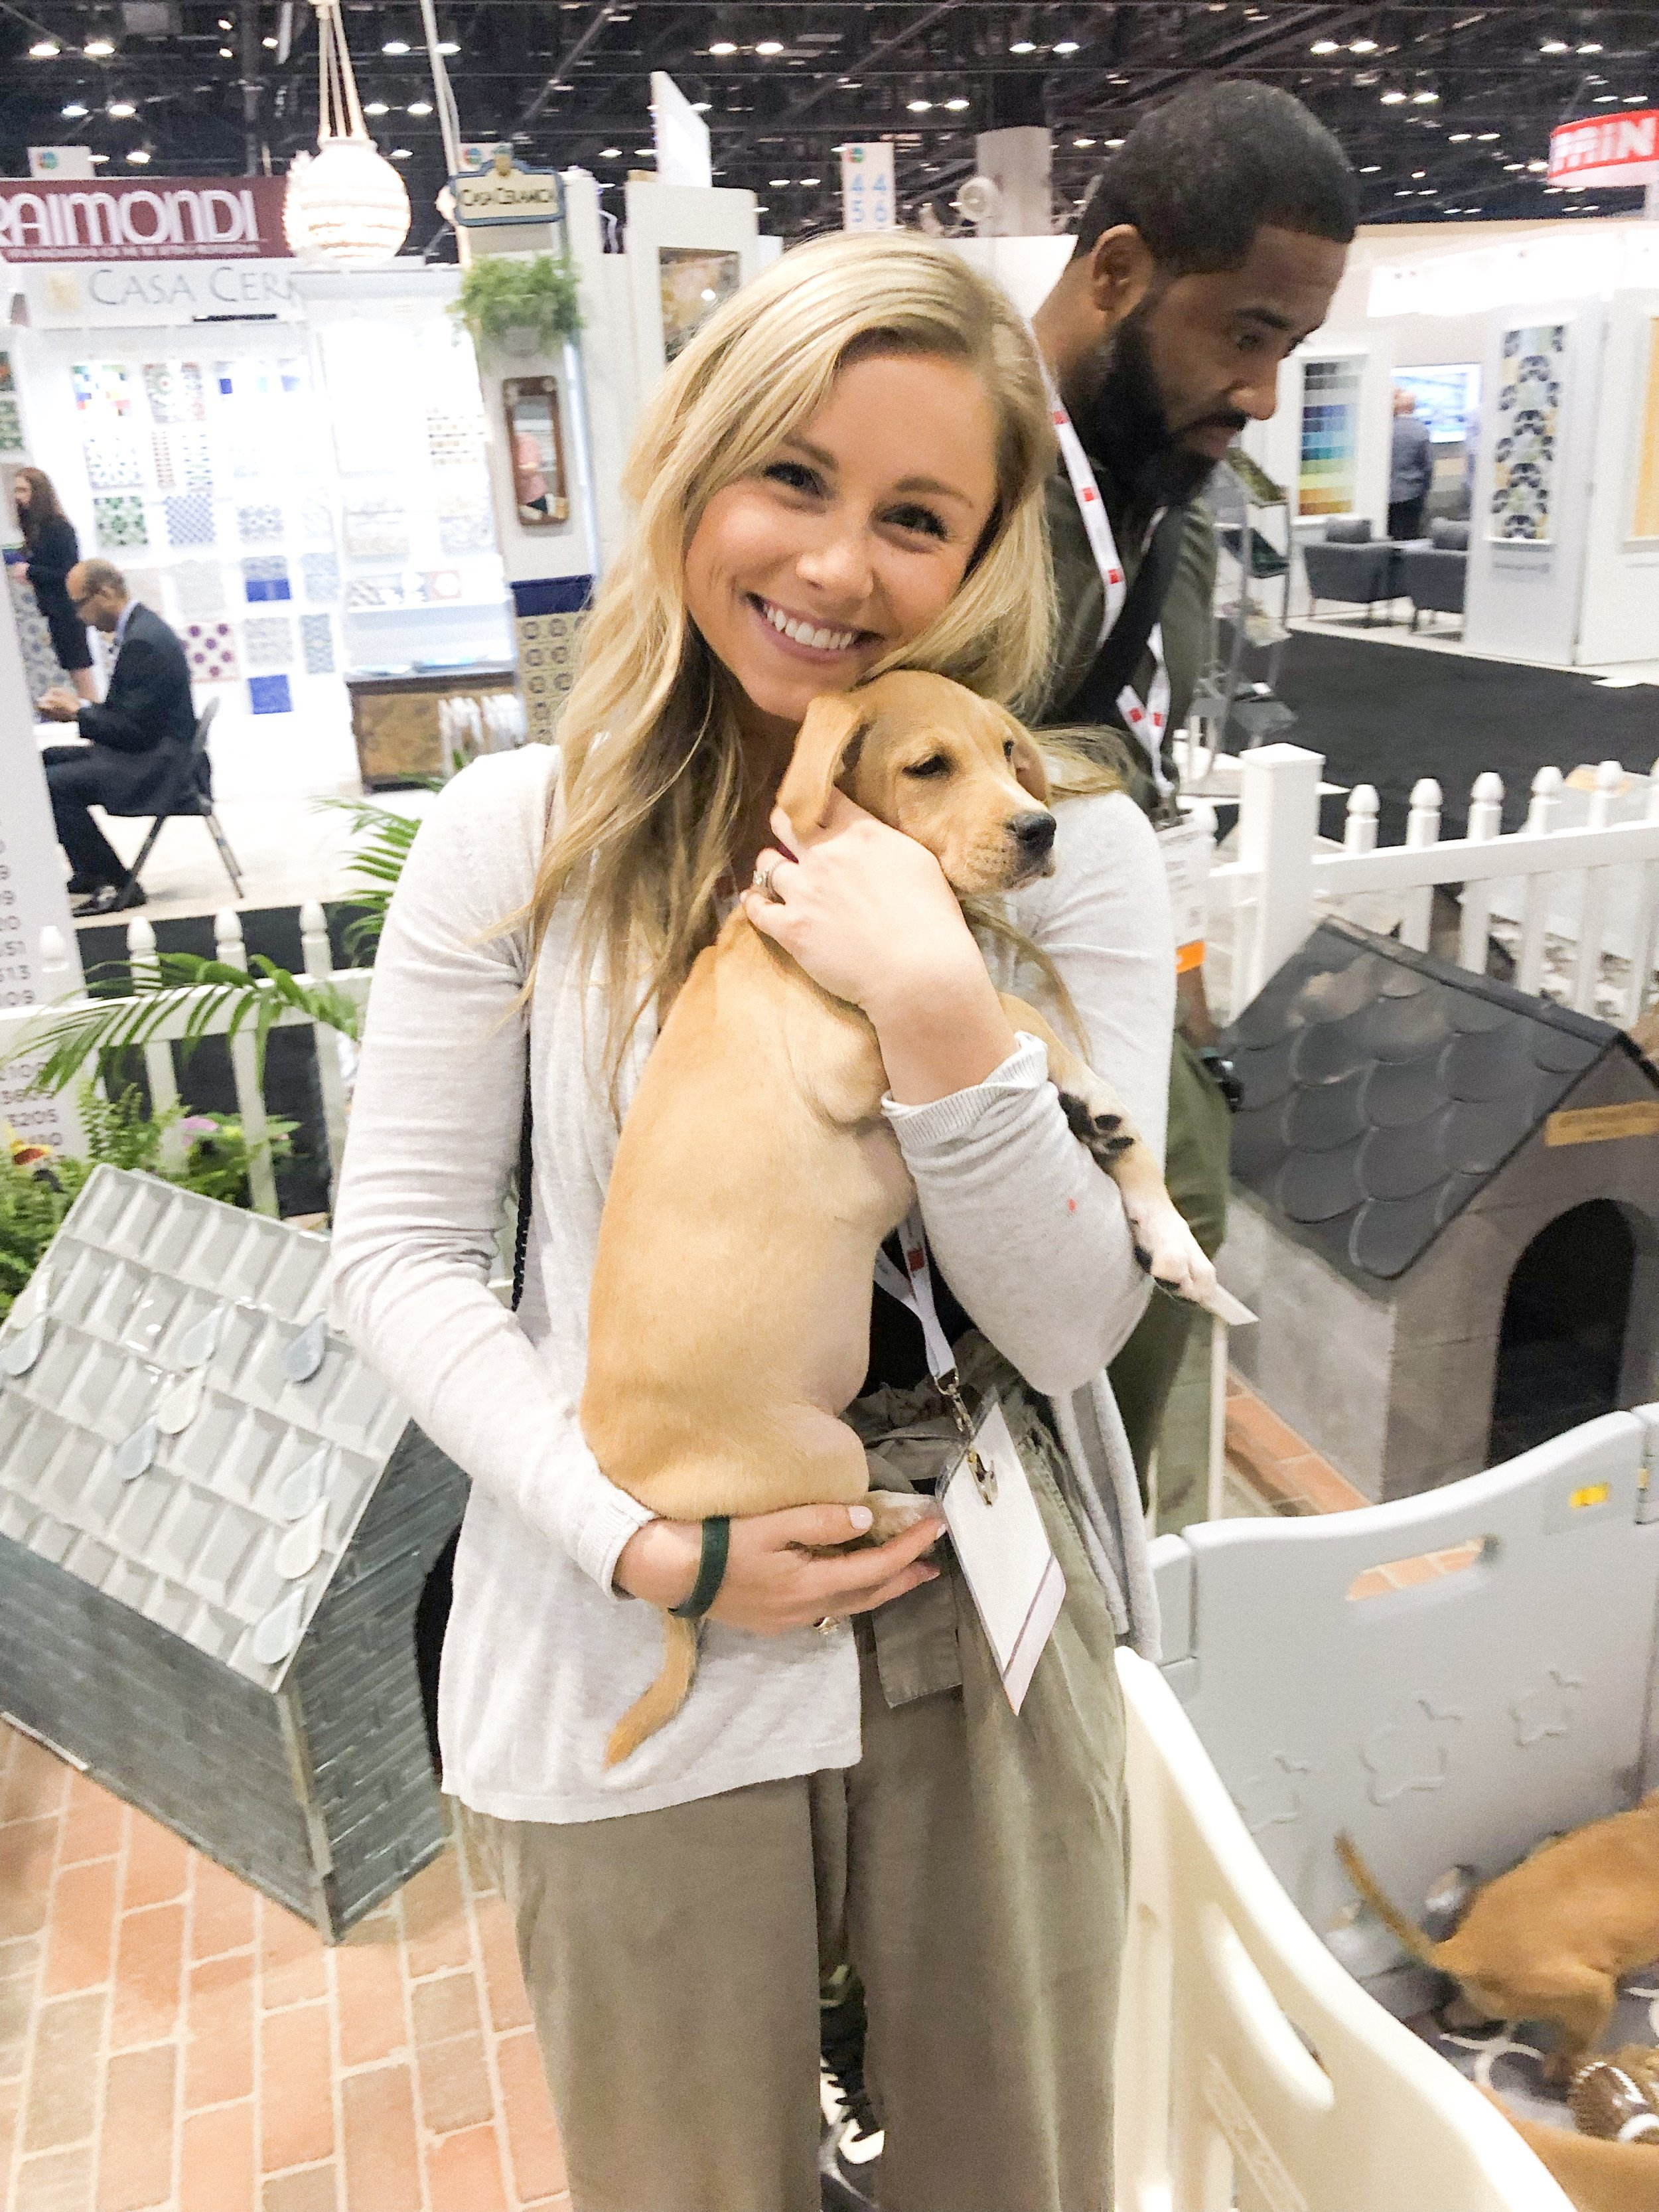 & there were puppies!! Tile Council of North America does a great exhibit every year where they have members create dog houses that will be donated to local animal shelters AND they have puppies on site that you can adopt!